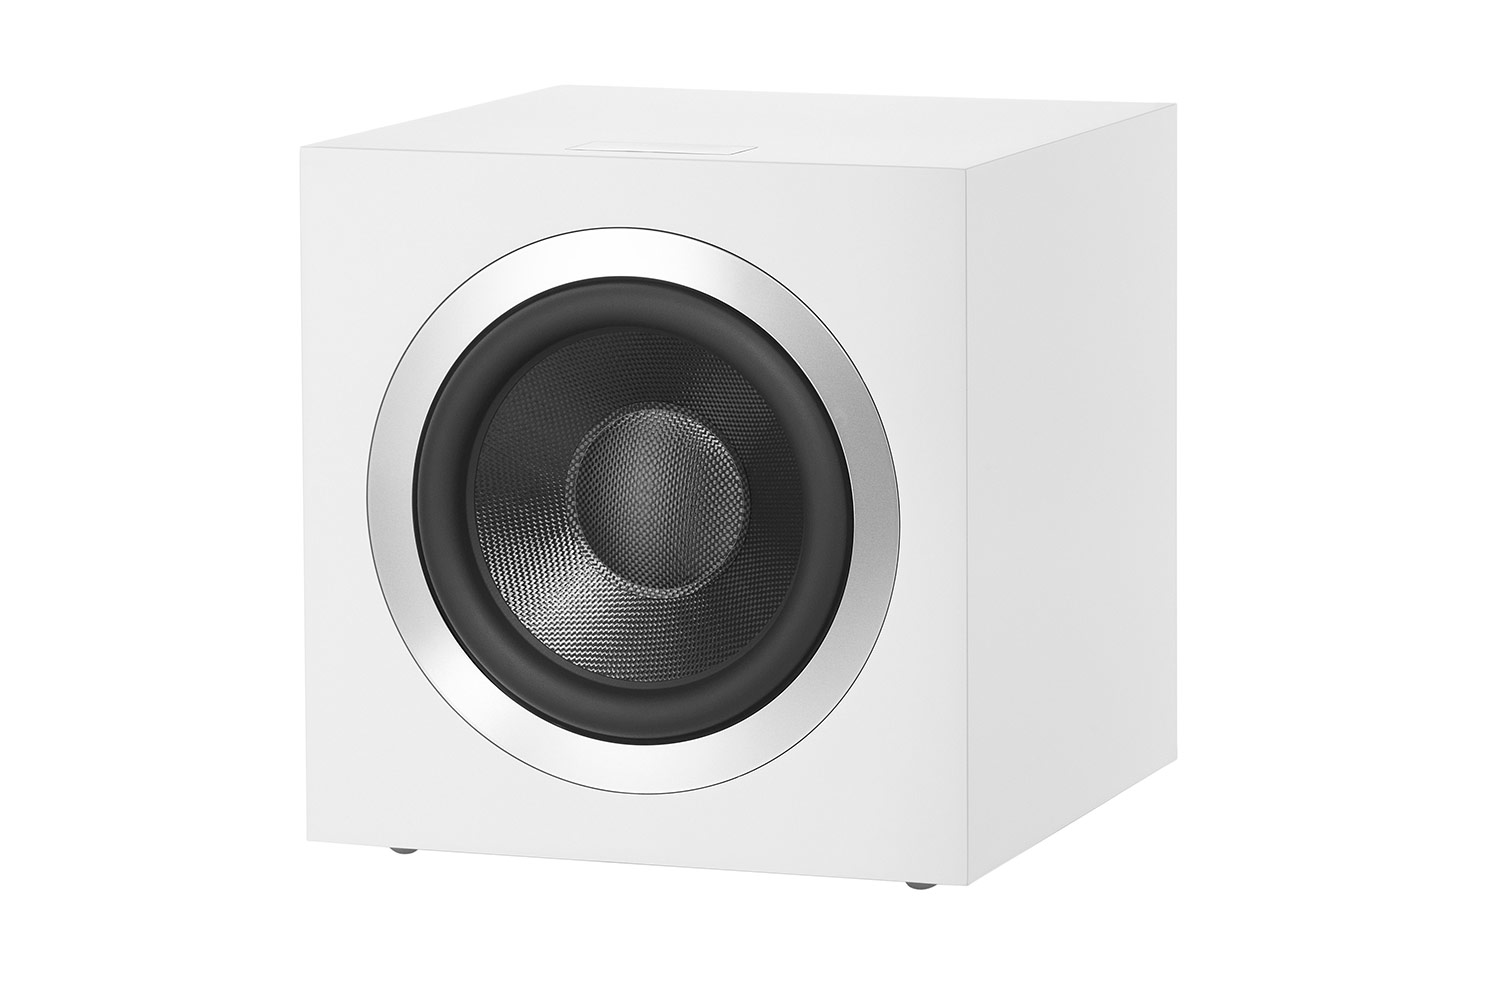 Bowers & Wilkins B&W DB4S - Subwoofer